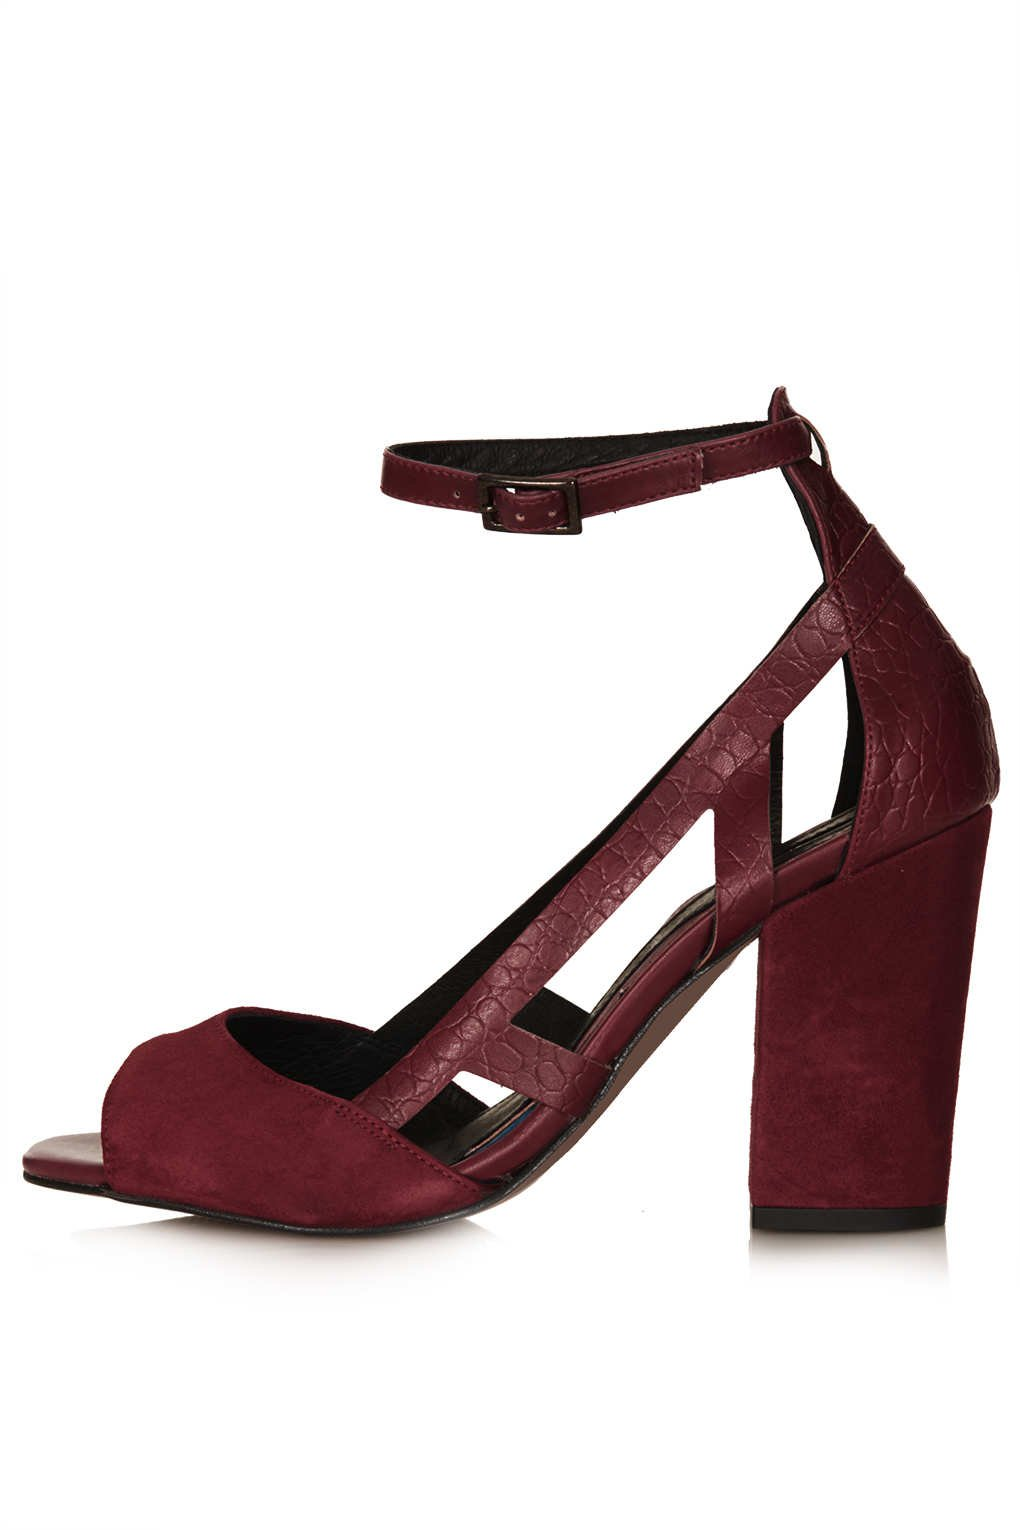 official store great deals look for Goal Block Heel Cut Out Shoes